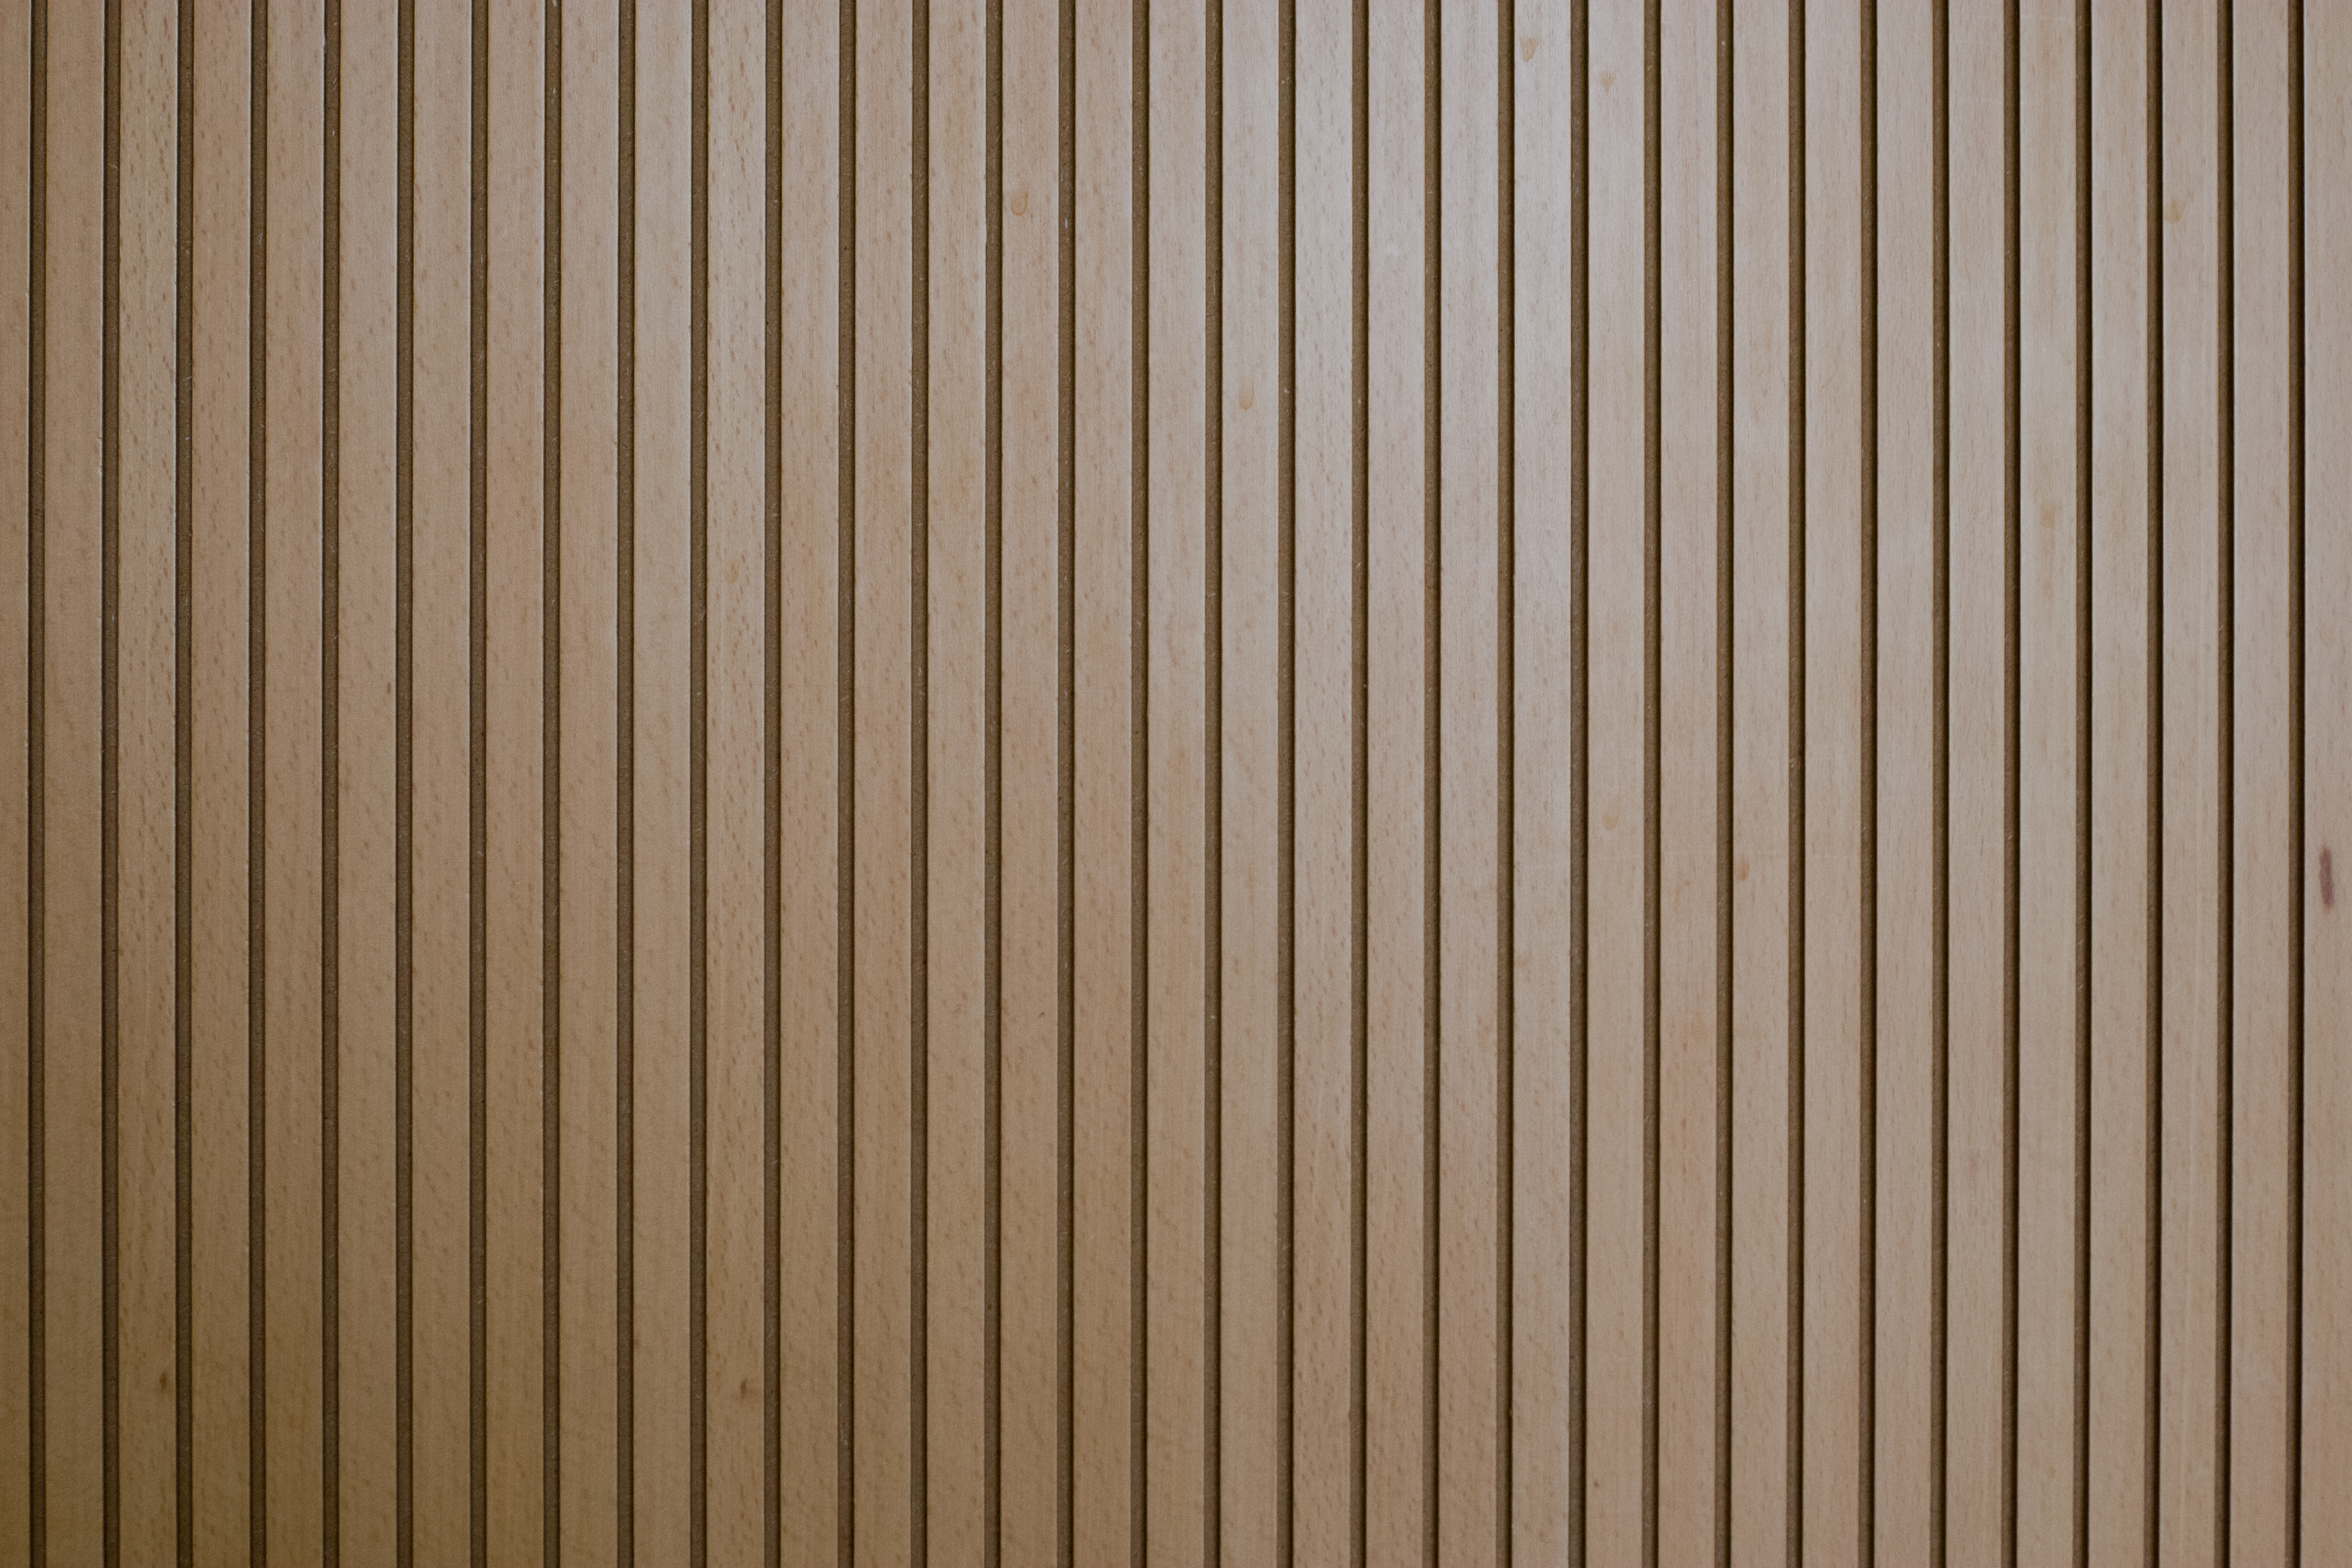 Texture thin wood panels flickr photo sharing